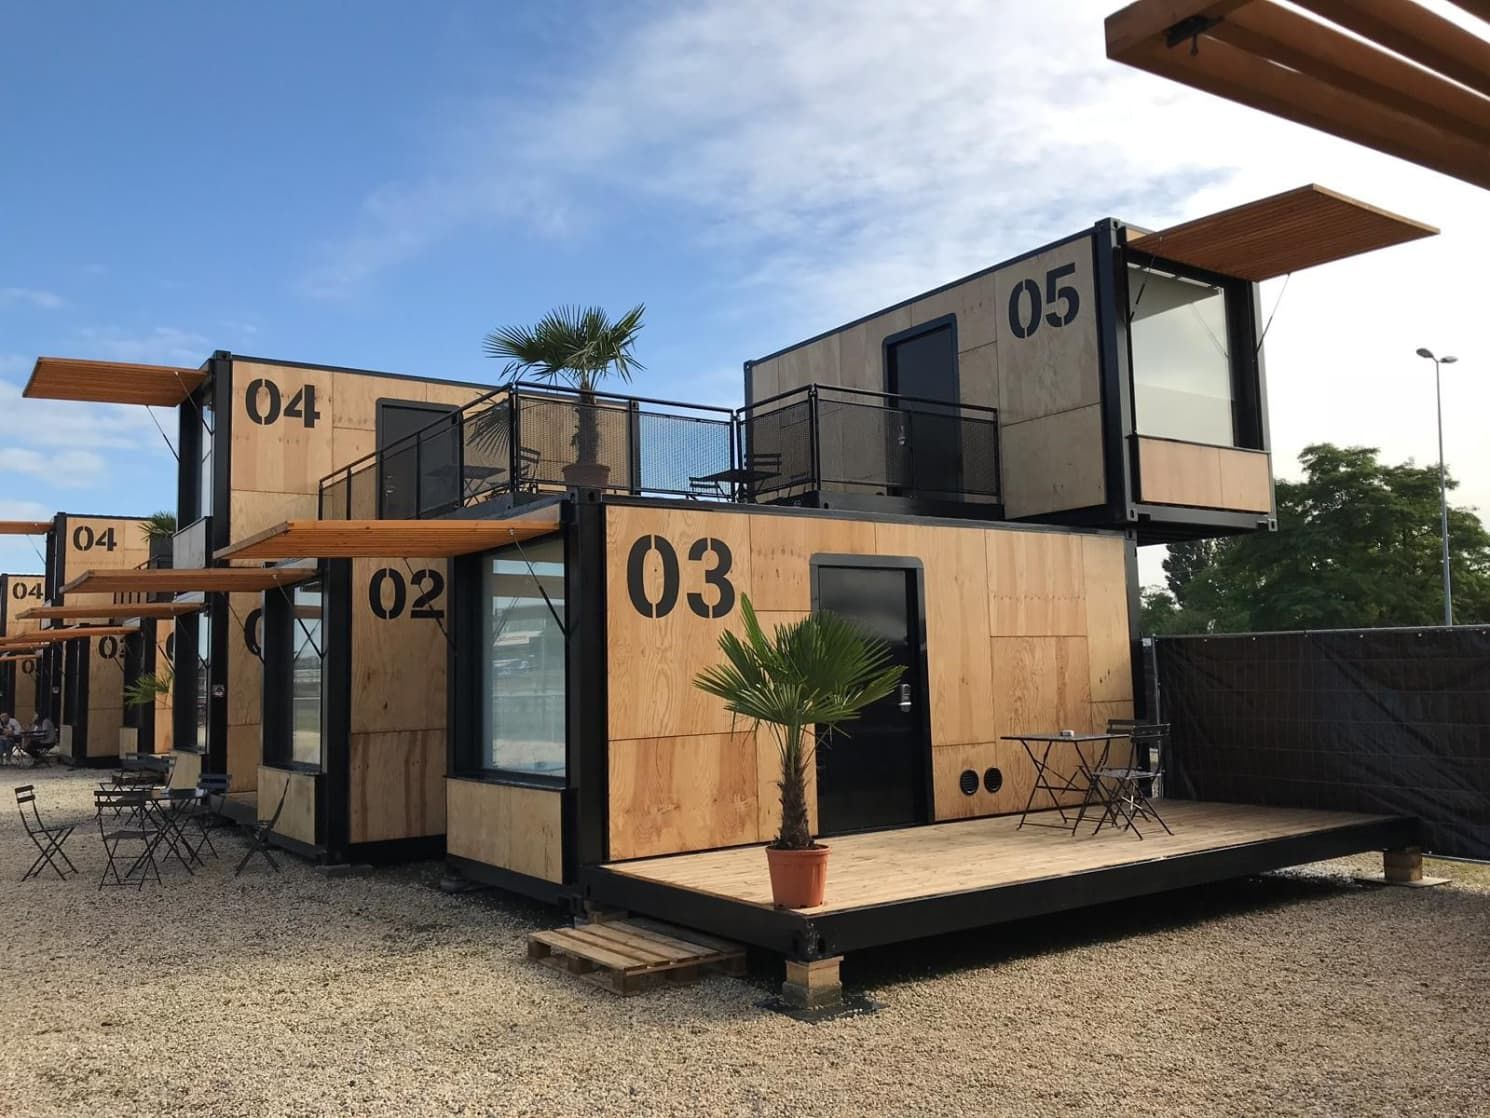 These Wooden Pop-Up Hotel Rooms Are Made of Eco-Friendly Shipping Containers